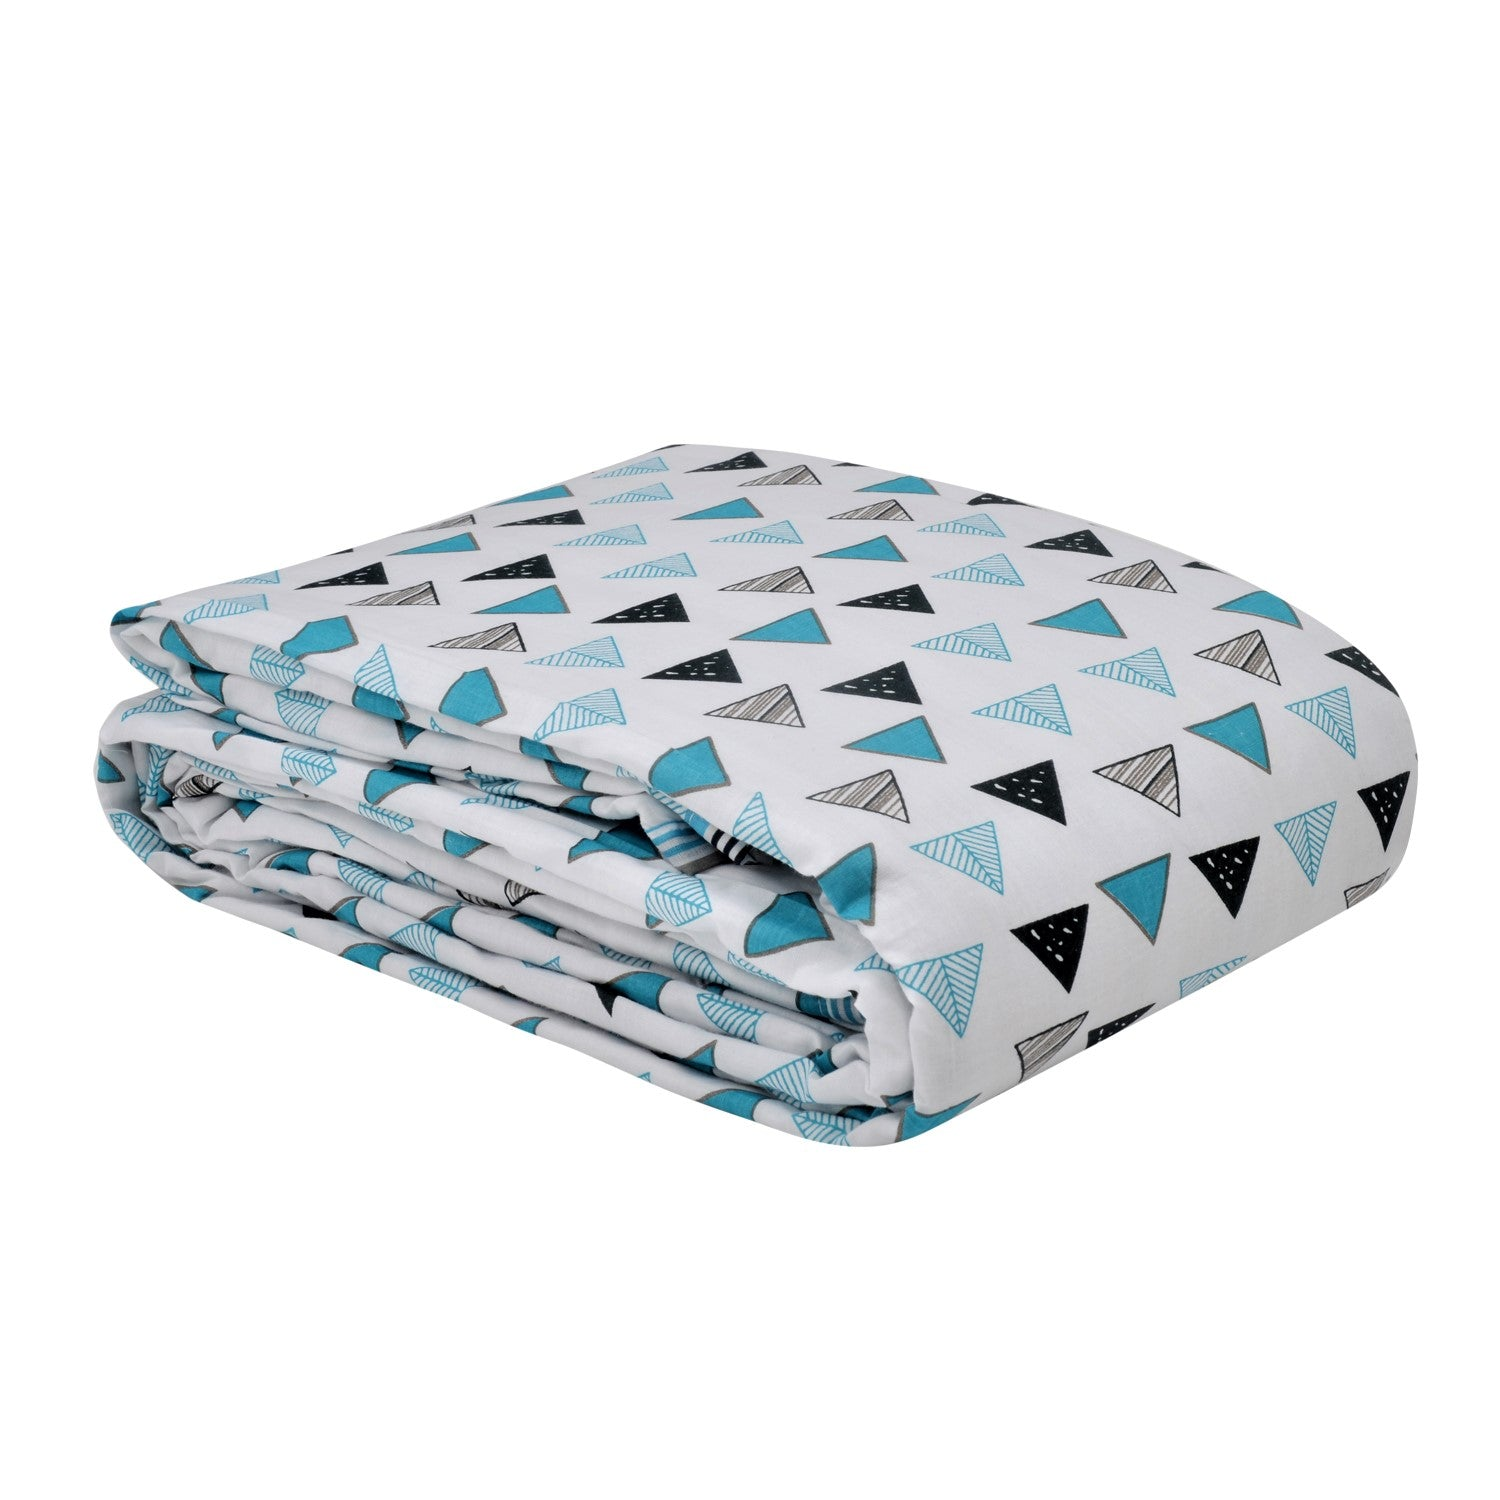 Trance Home Linen Cotton Single Dohar-TRIANGLES Blue Black